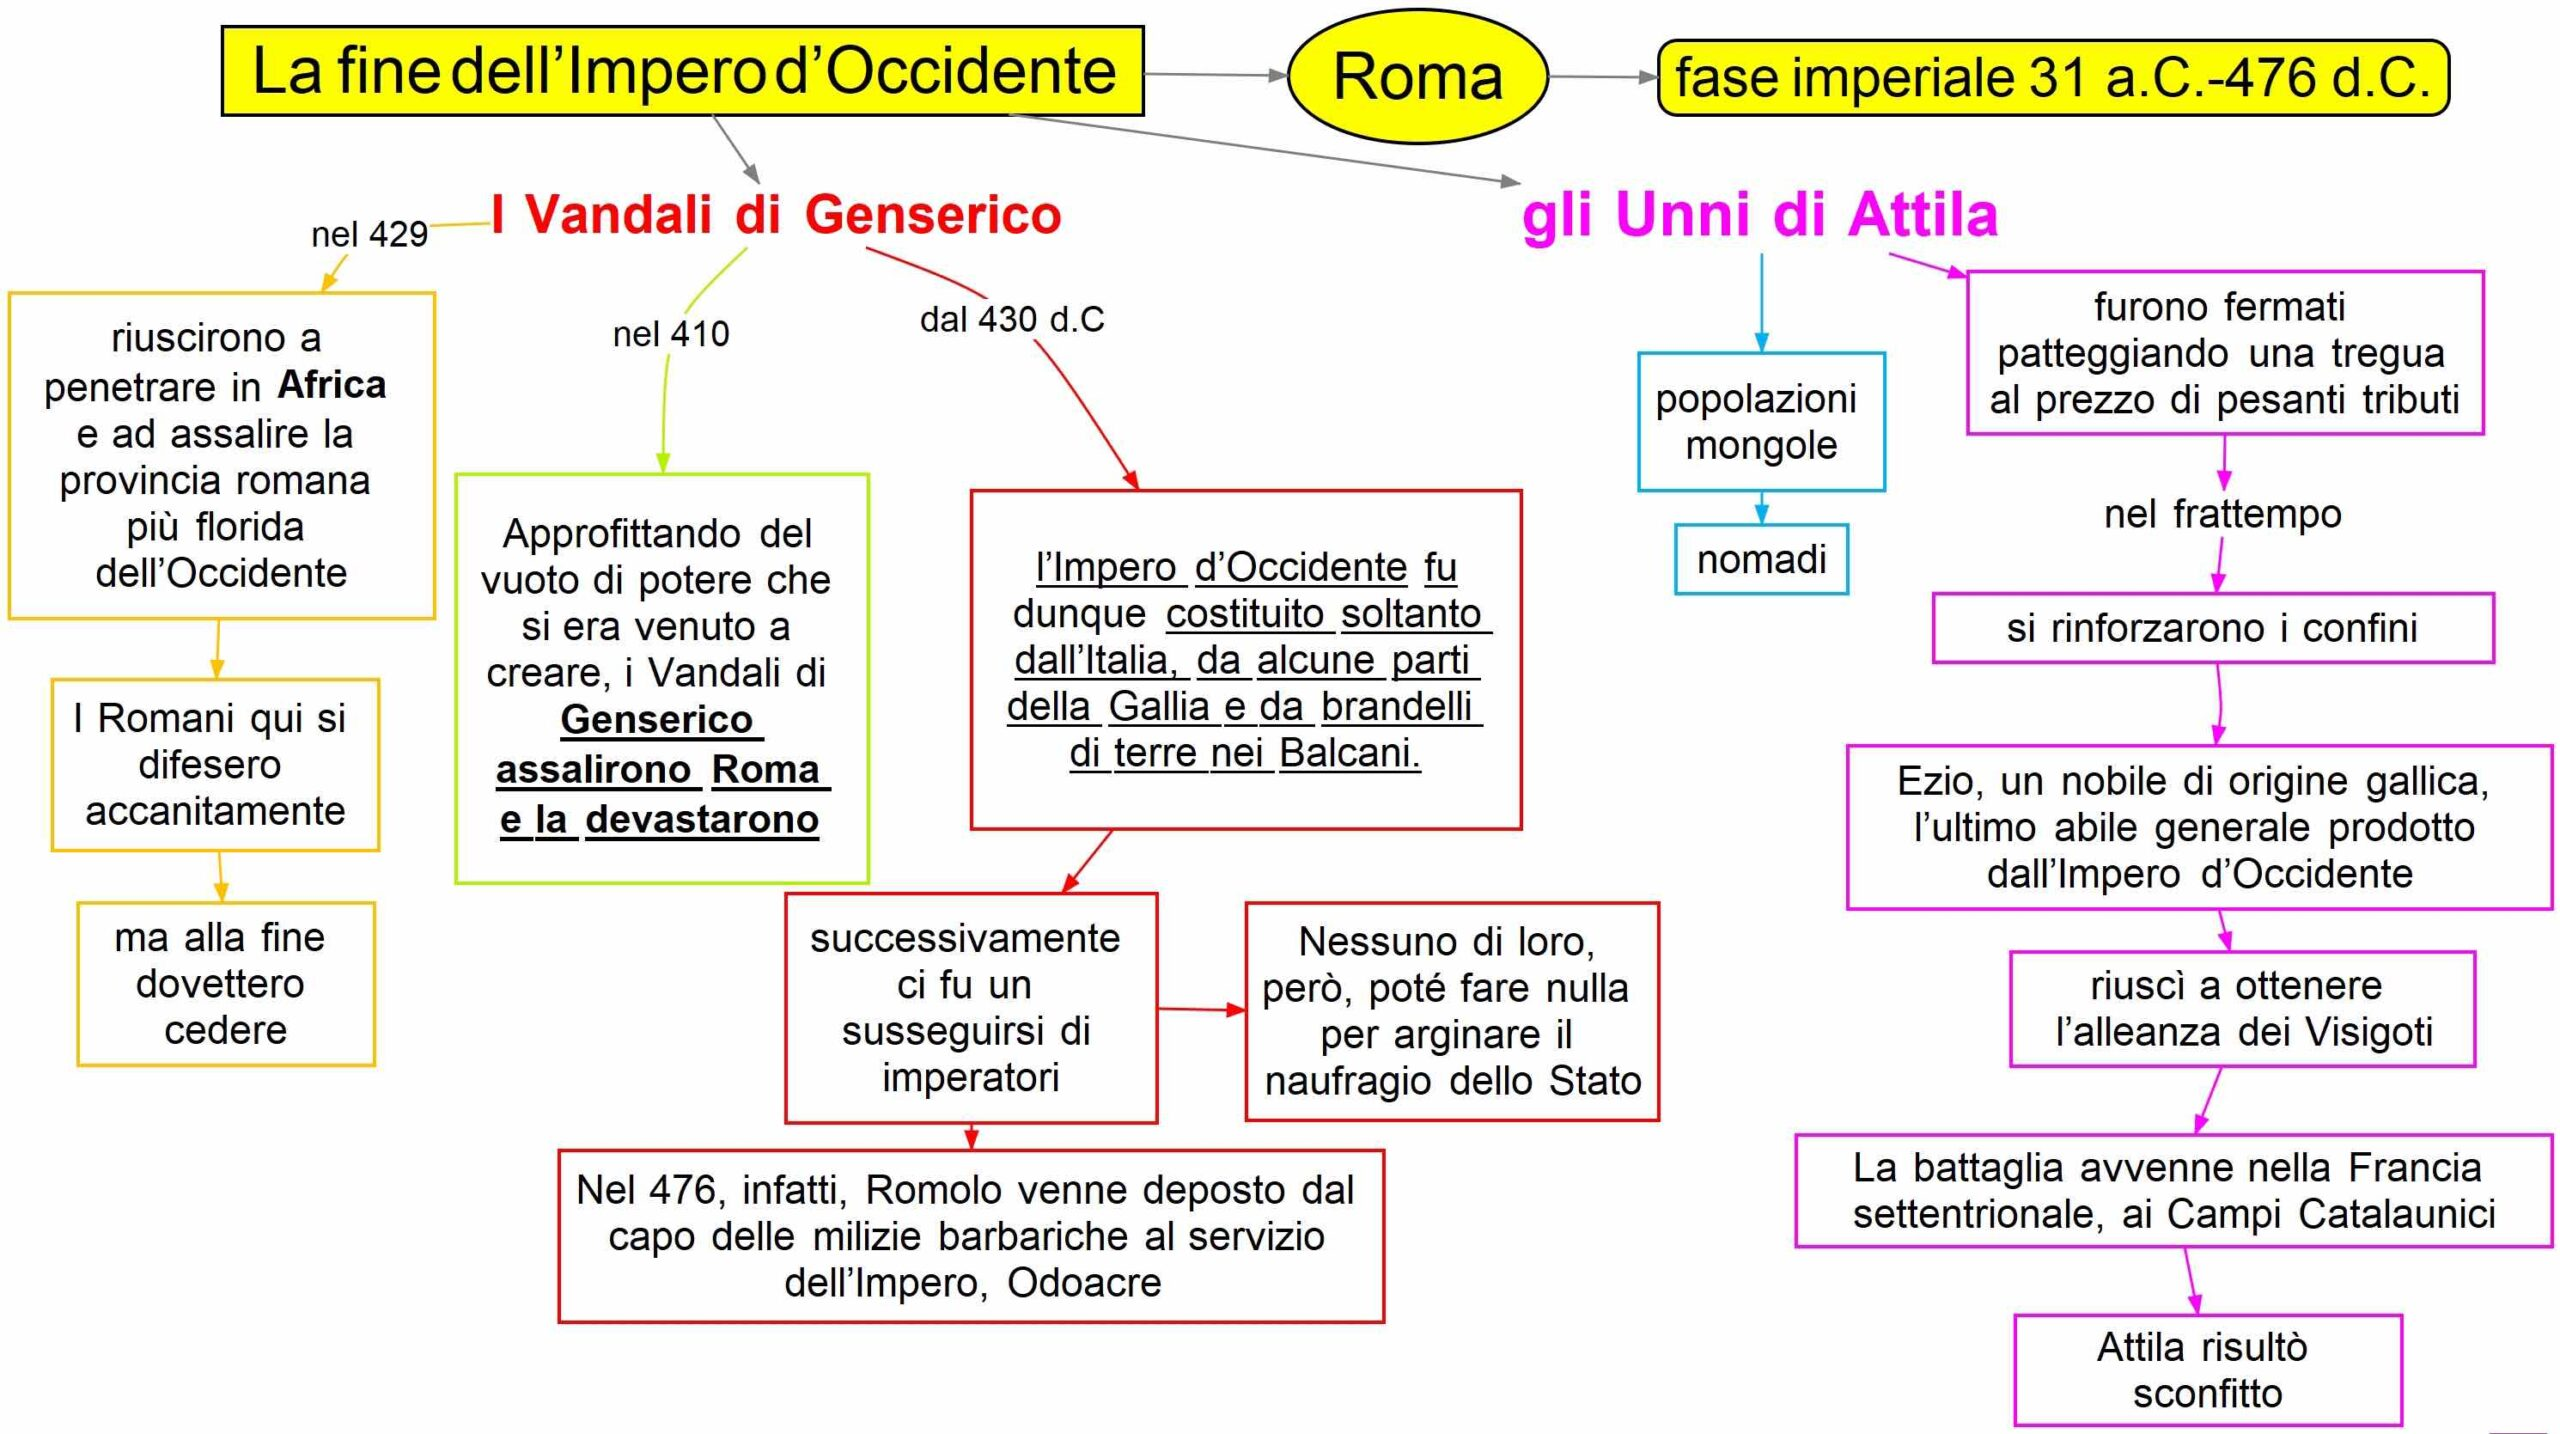 la fine dell'Impero d'Occidente -Vandali -Unni